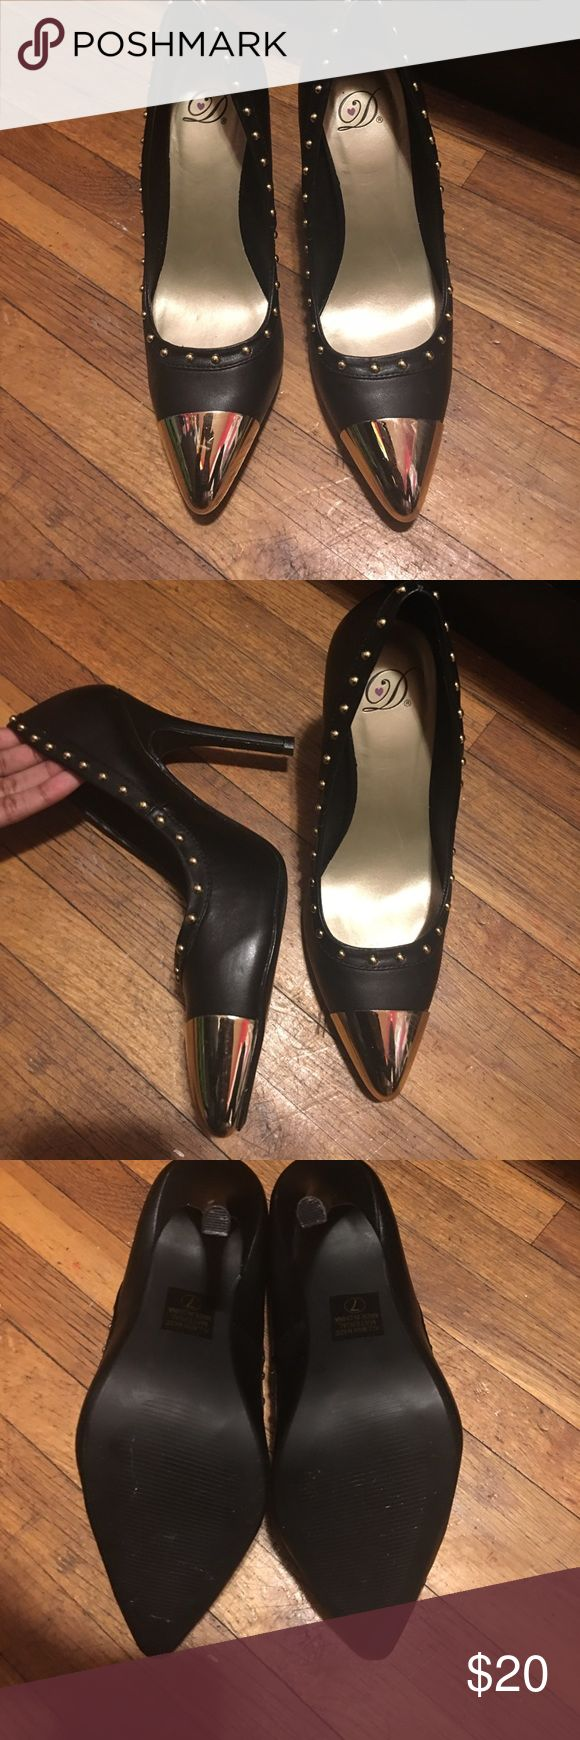 Women's Black and Gold Pumps These are brand-new black and gold women's pointy toe pumps. Originally brought from a boutique store but I've never worn them. They are beautiful shoes and will look great with any black outfit! Unknown Shoes Heels